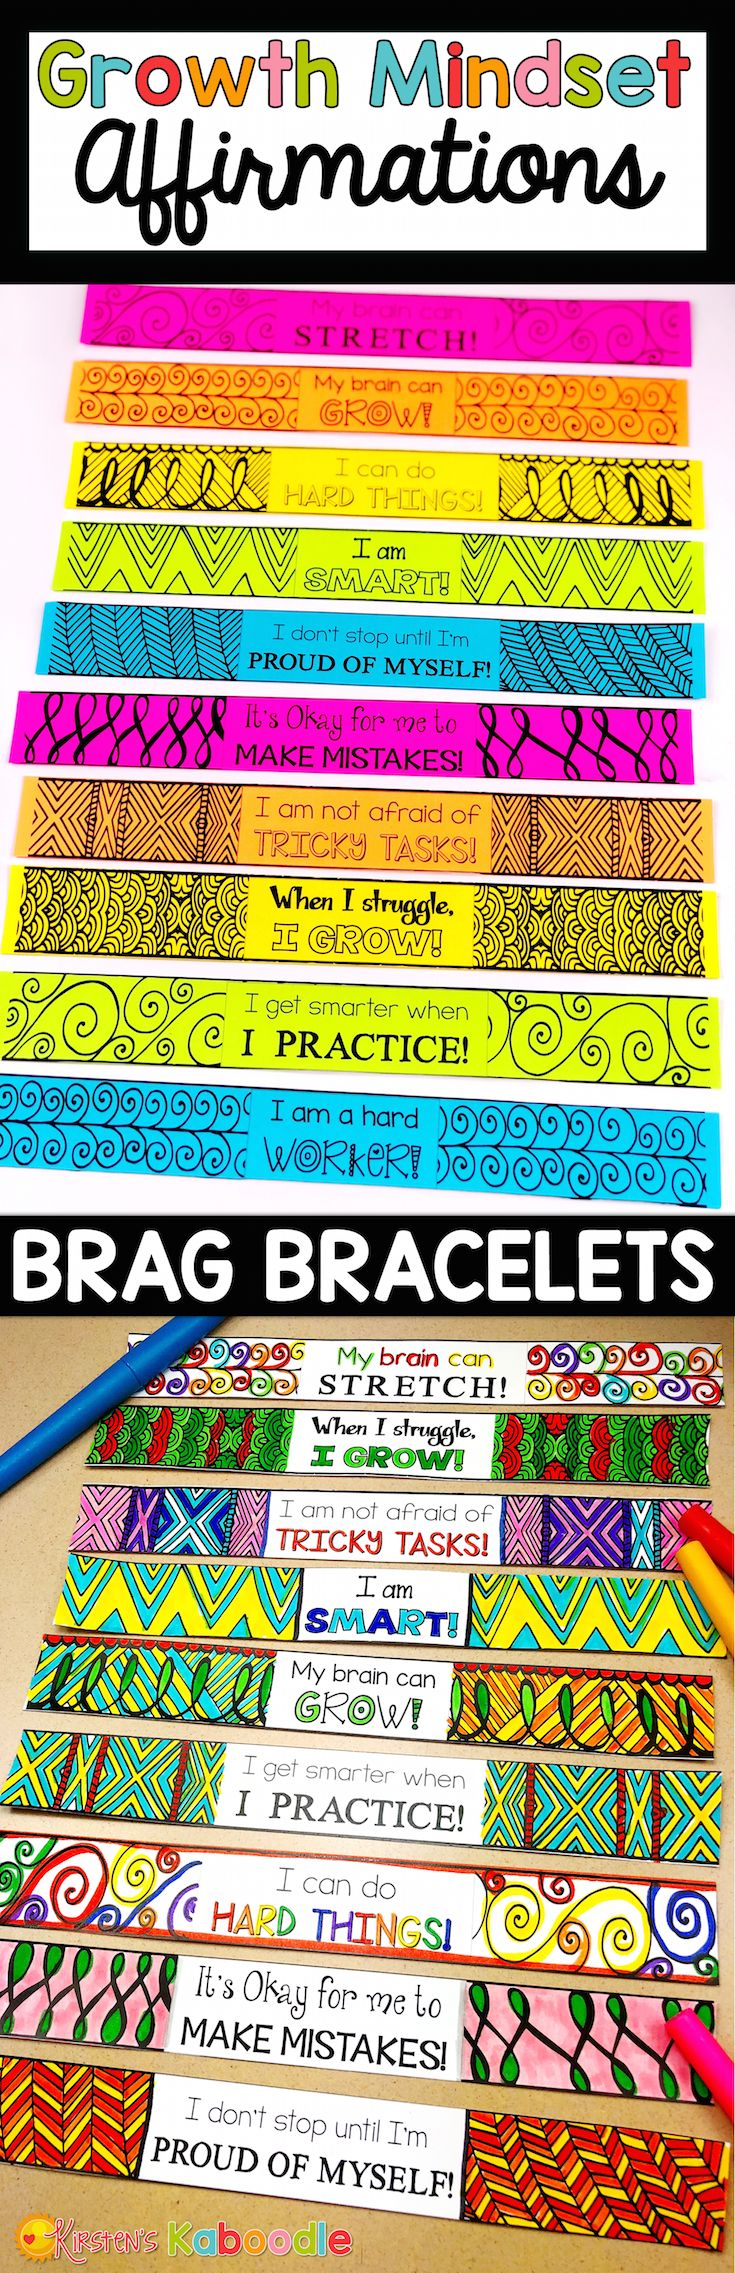 These growth mindset affirmations brag bracelets are the perfect addition to your growth mindset activities and lessons. They are easy to use and fun for students! There are 52 different affirmations with zen doodle designs. Students can color the brag bracelets or you can print them on bright paper. #growthmindset #bragbracelets